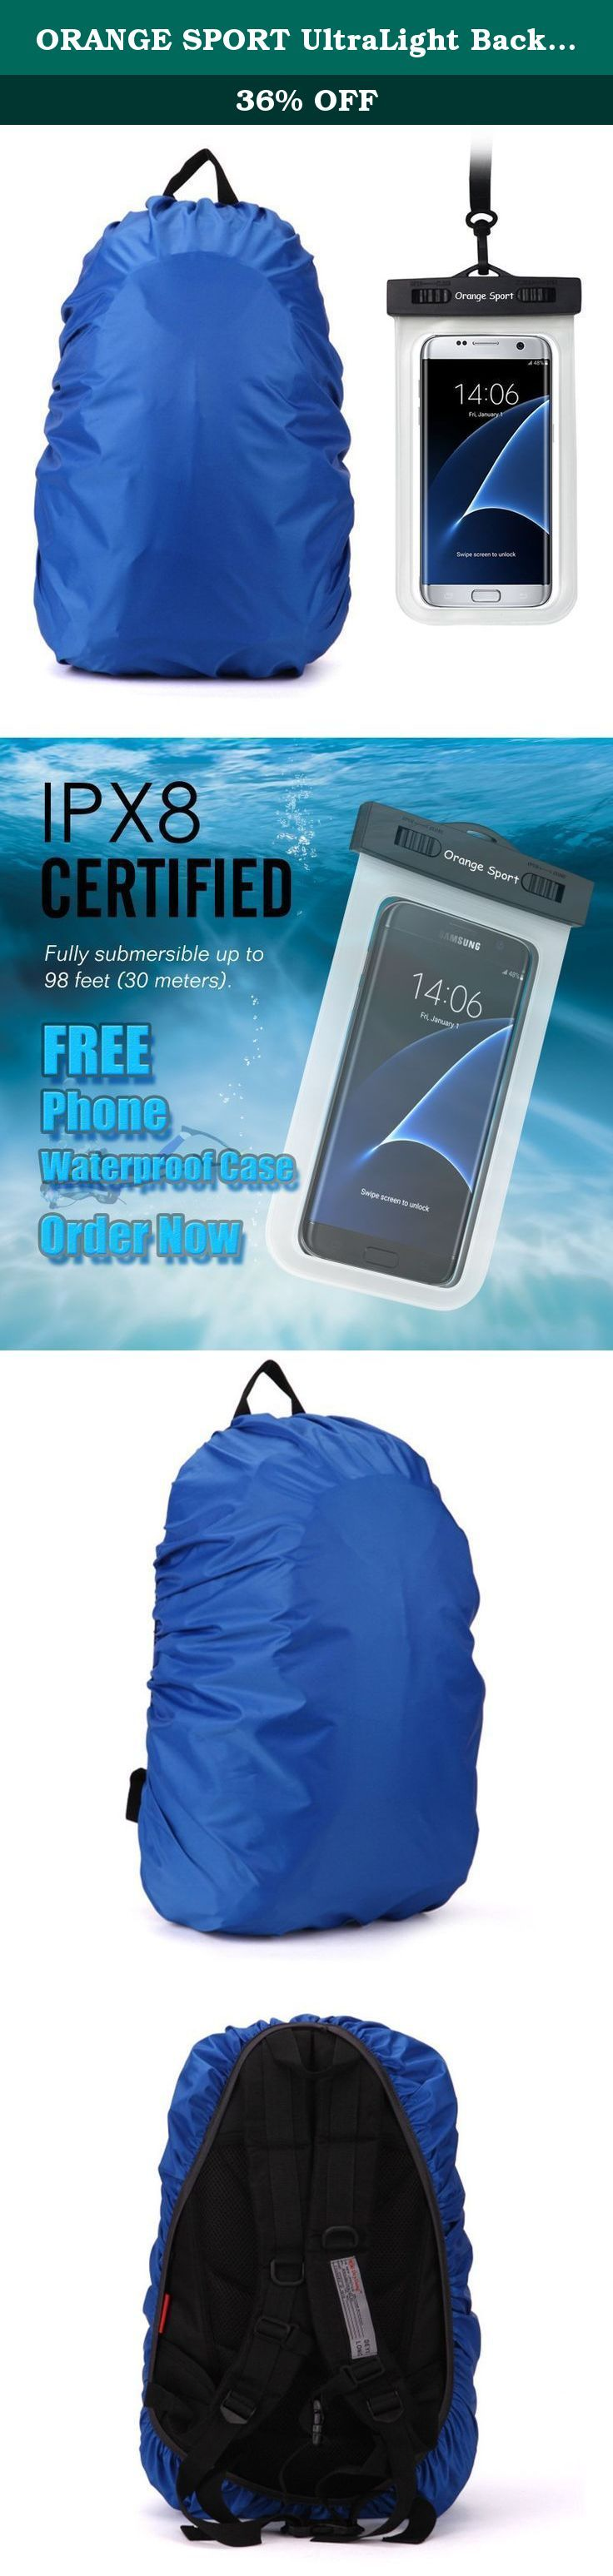 """ORANGE SPORT UltraLight Backpack Rain Cover With PU Stored Bag&Cellphone Waterproof Case,3 Color Available,15-80L For Camping,Hiking,Cycling. S: Fit Range: 1800 - 2500 cu in/ 30 - 40 L 27"""" X 15"""" X 8.5"""". Material: 210T nylon, 3000mm waterproof PU coating,guaranteed not to let rain into your backpack. With elastic design, it is able to adjust the size according to different backpacks. Compact and portable: folds down and includes a drawstring bag for storage. Perfectly Fit with School..."""